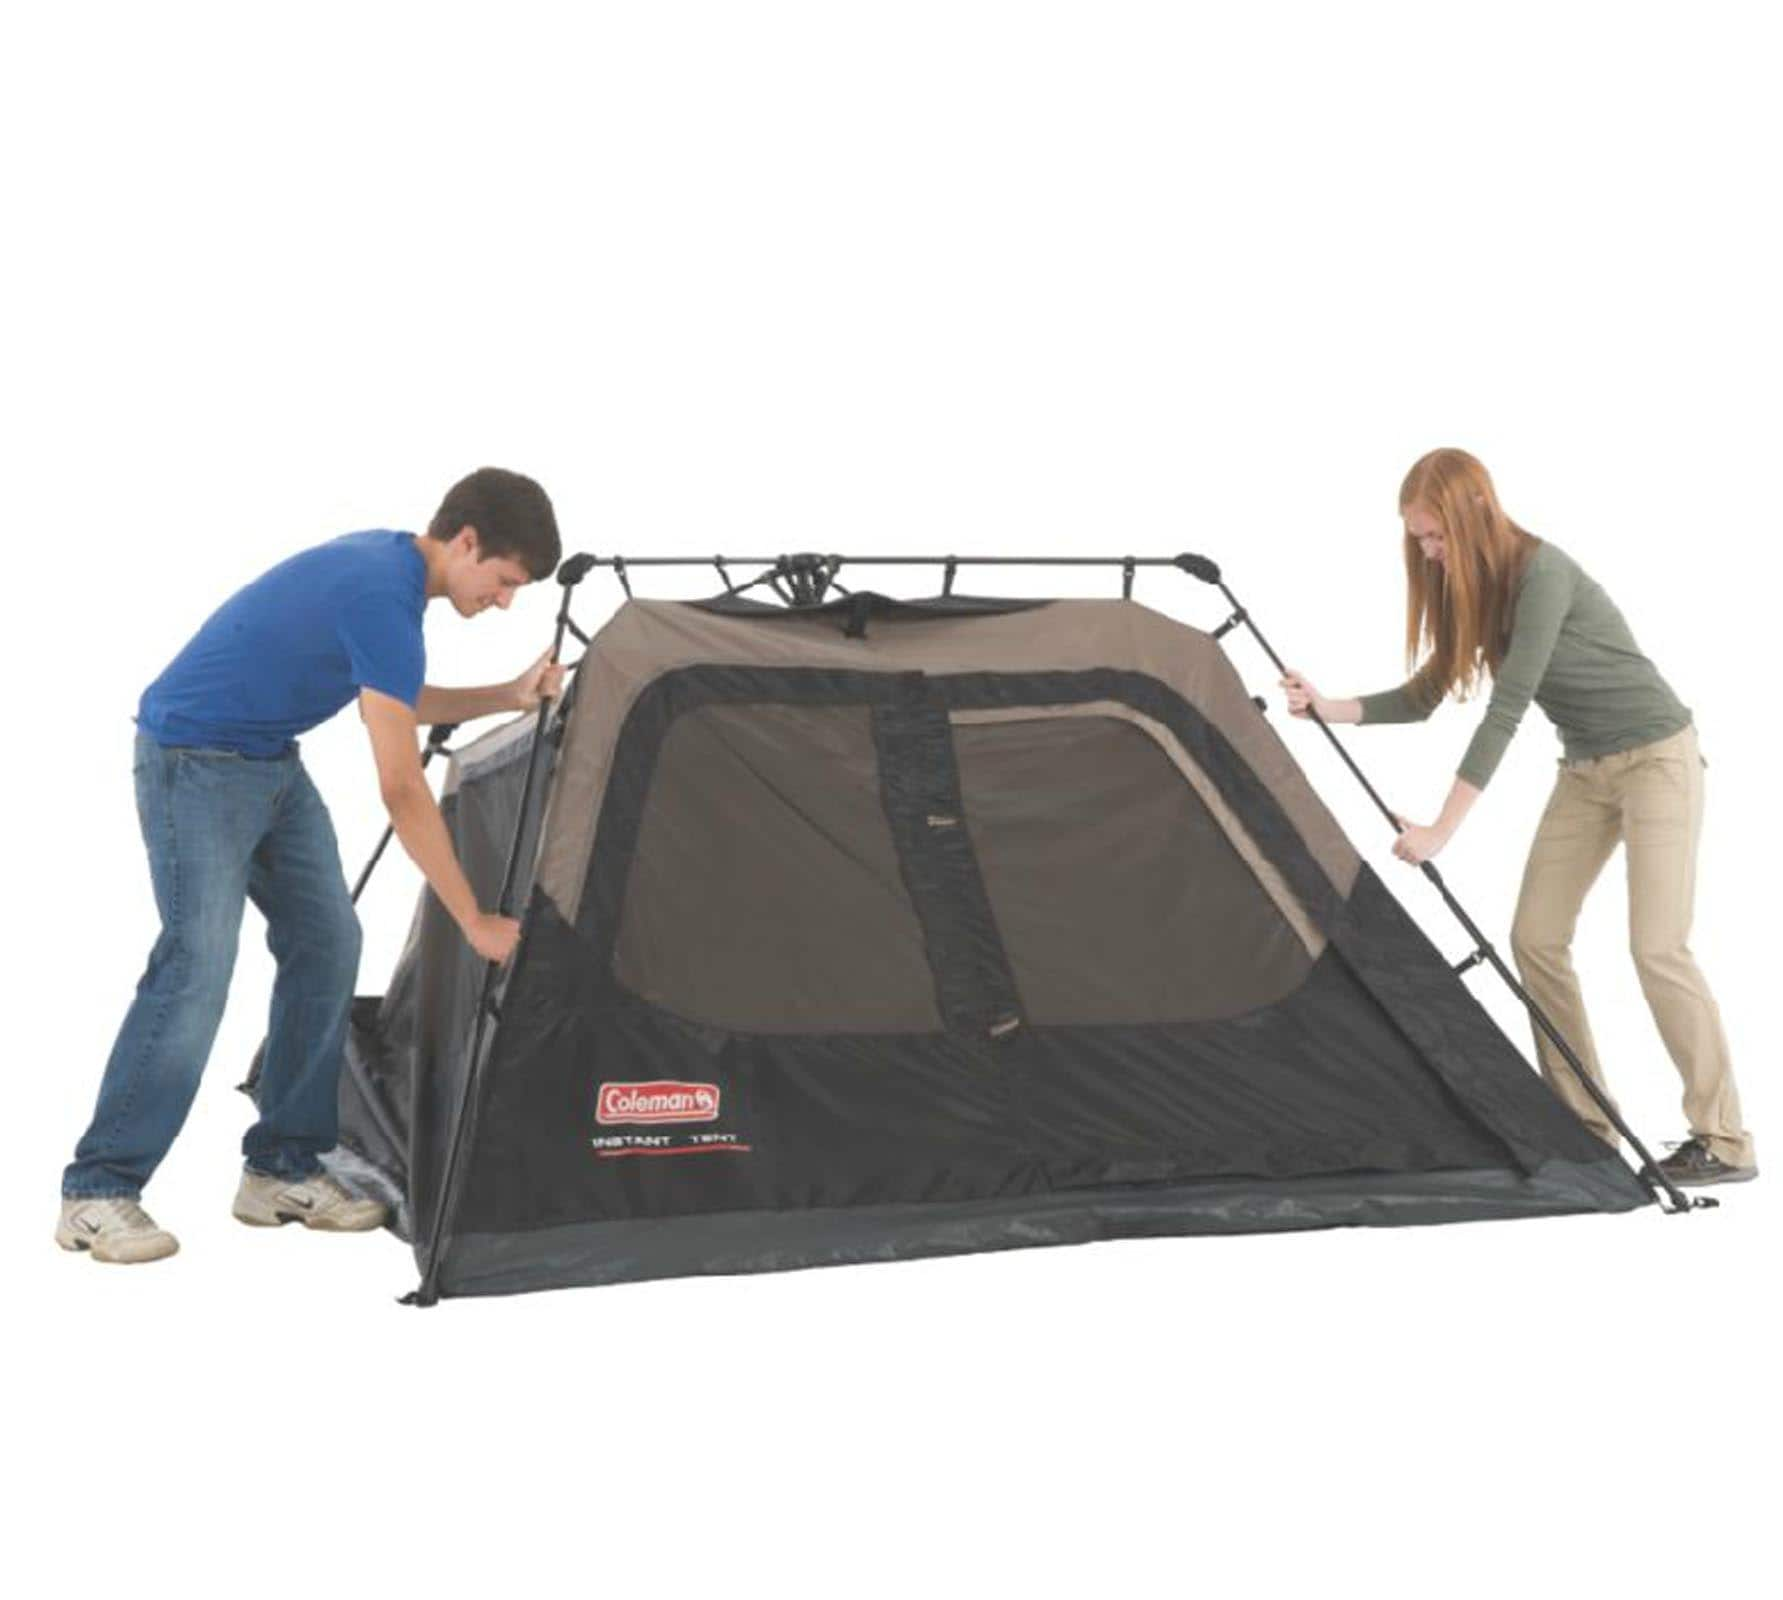 Coleman Instant Set-Up 4-Person Tent, 8' x 7' - $76.05